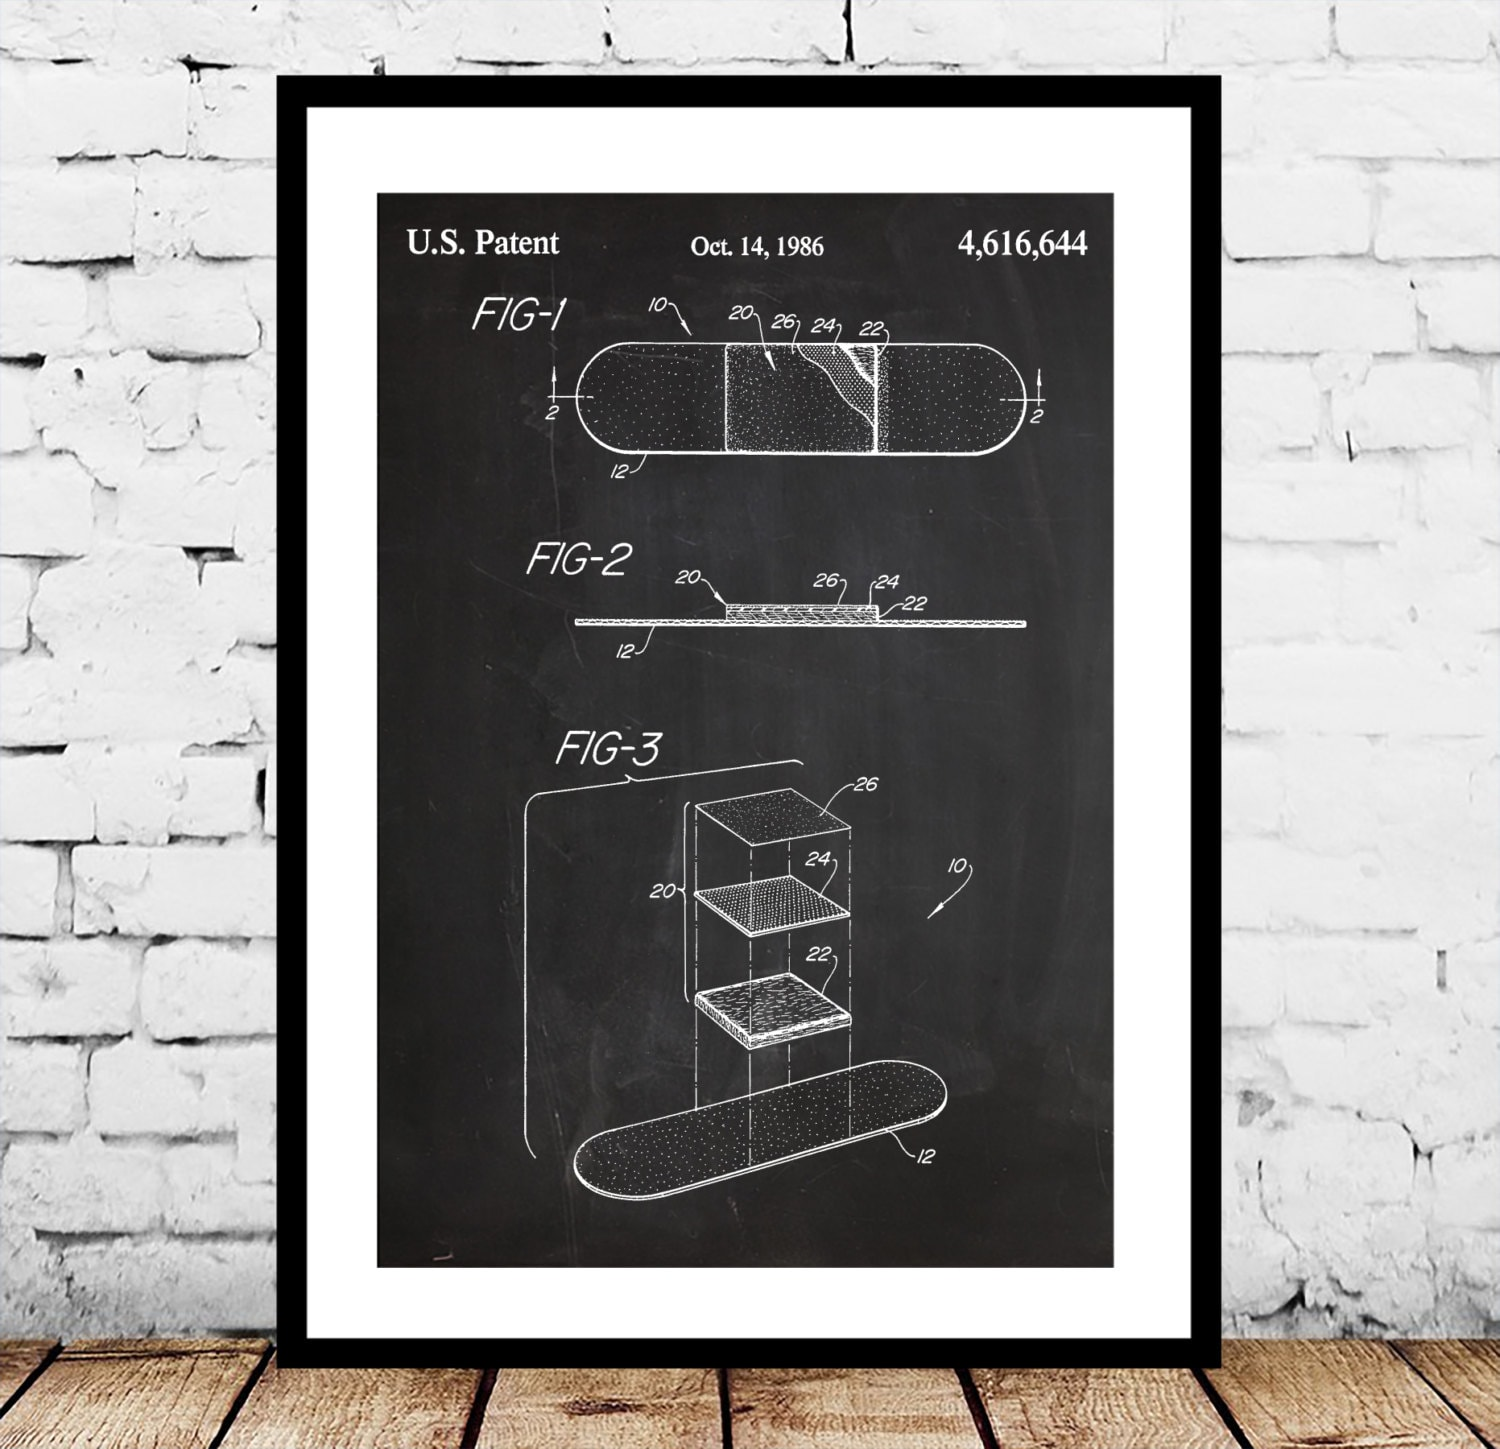 Band aid patent band aid poster band aid blueprint band aid print band aid patent band aid poster band aid blueprint band aid print band aid art band aid decor malvernweather Image collections